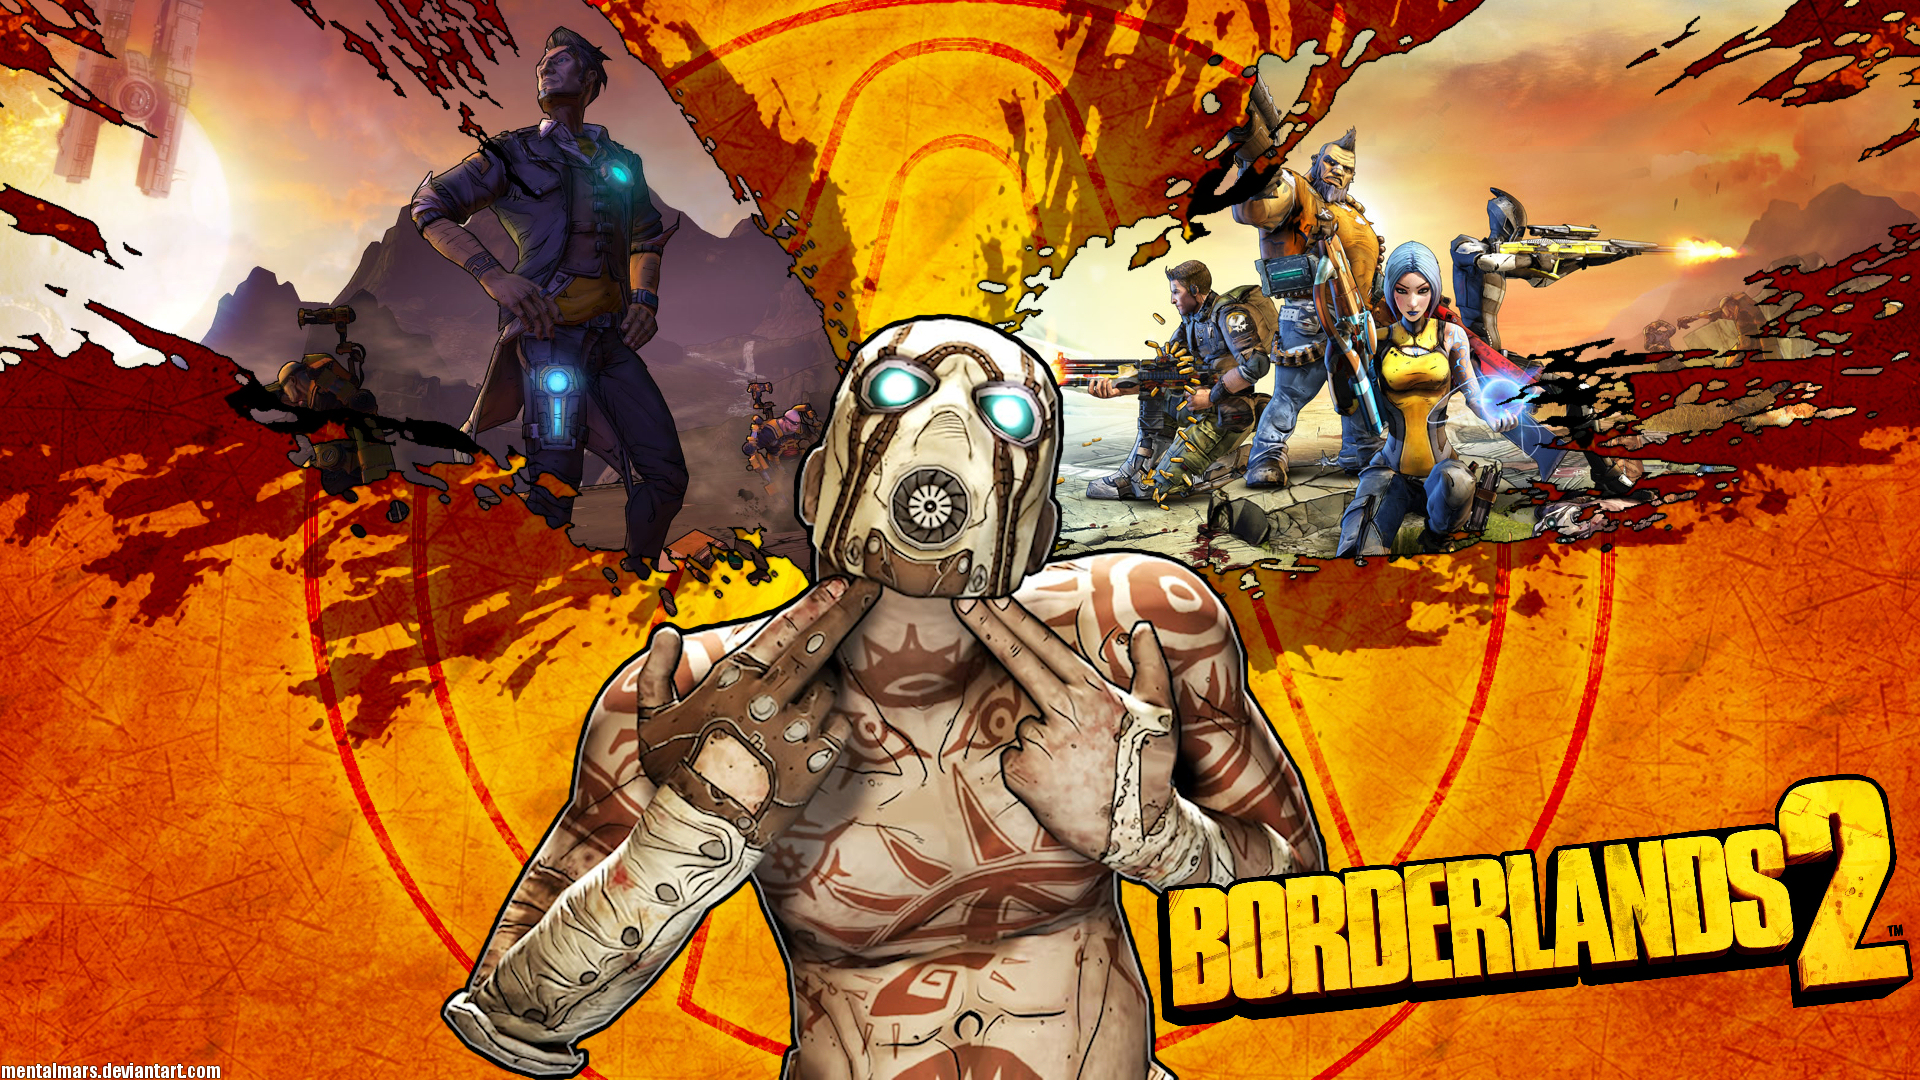 Borderlands 2 For Mac OS X